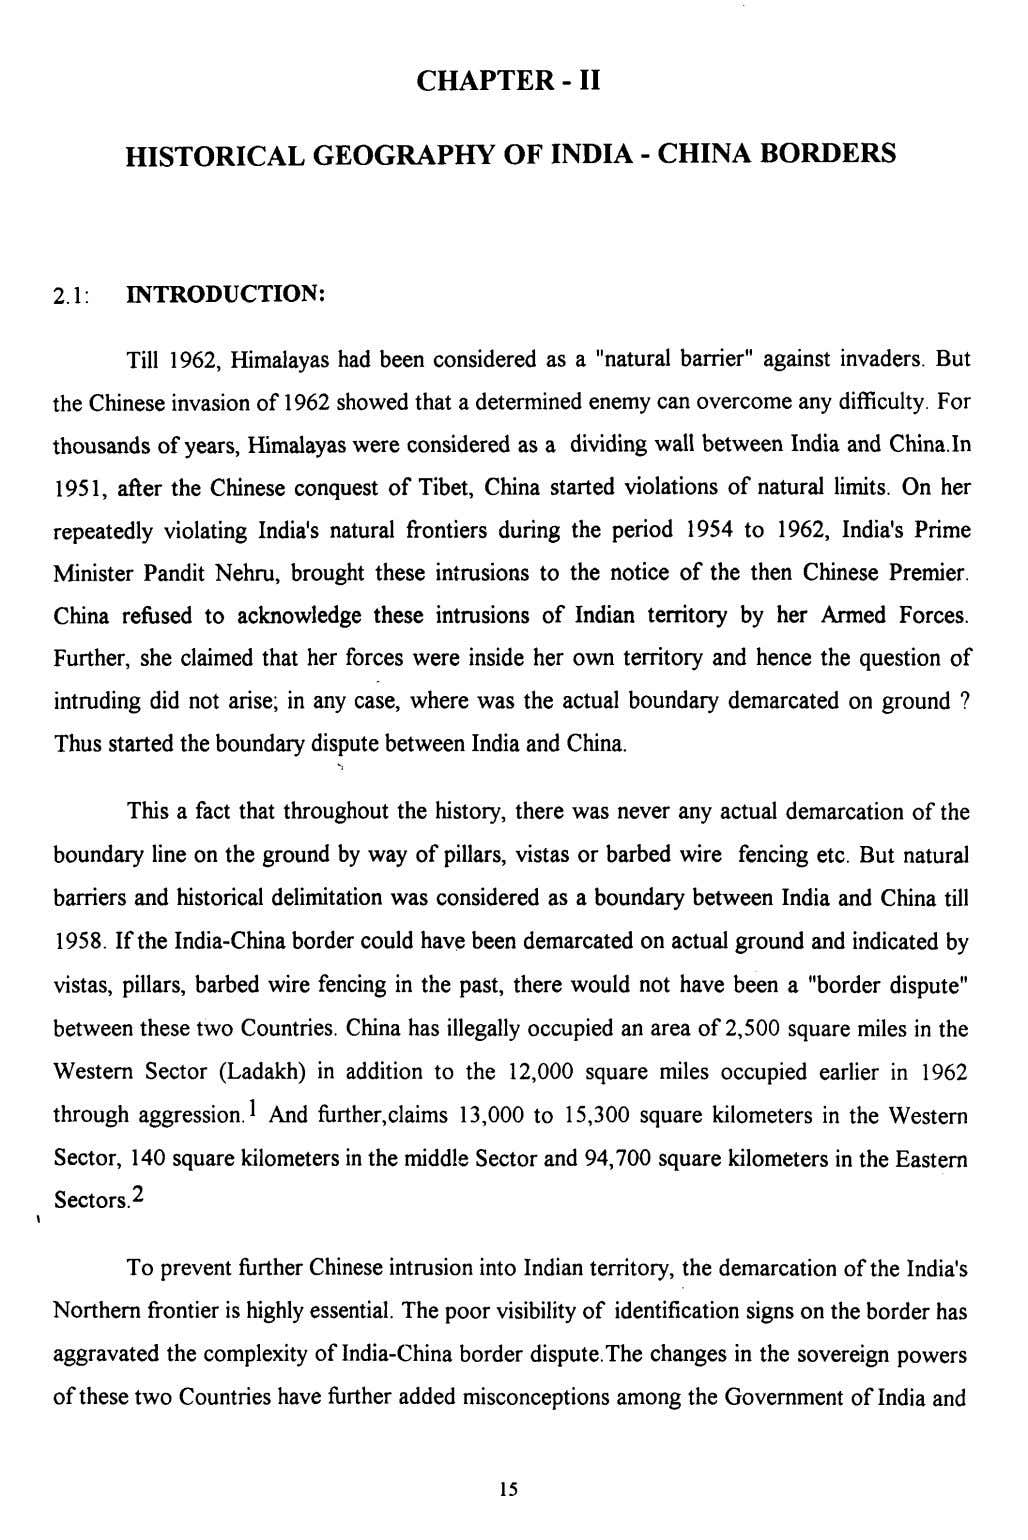 CHAPTER - II HISTORICAL GEOGRAPHY OF INDIA - CHINA BORDERS 2.1: INTRODUCTION: Till 1962, Himalayas